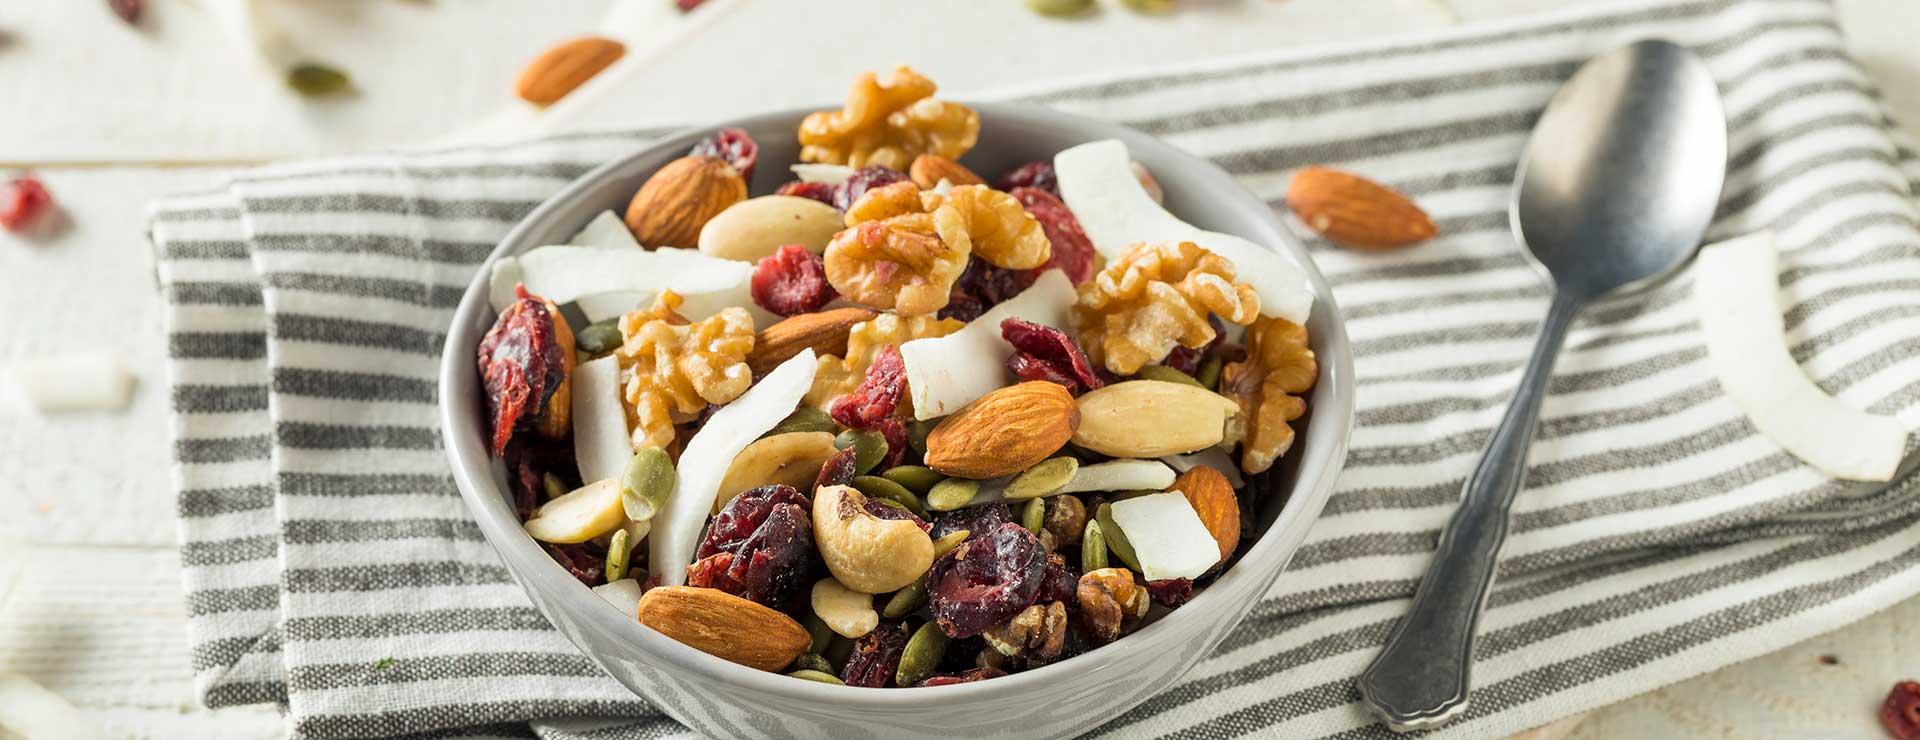 bowl of healthy trail mix